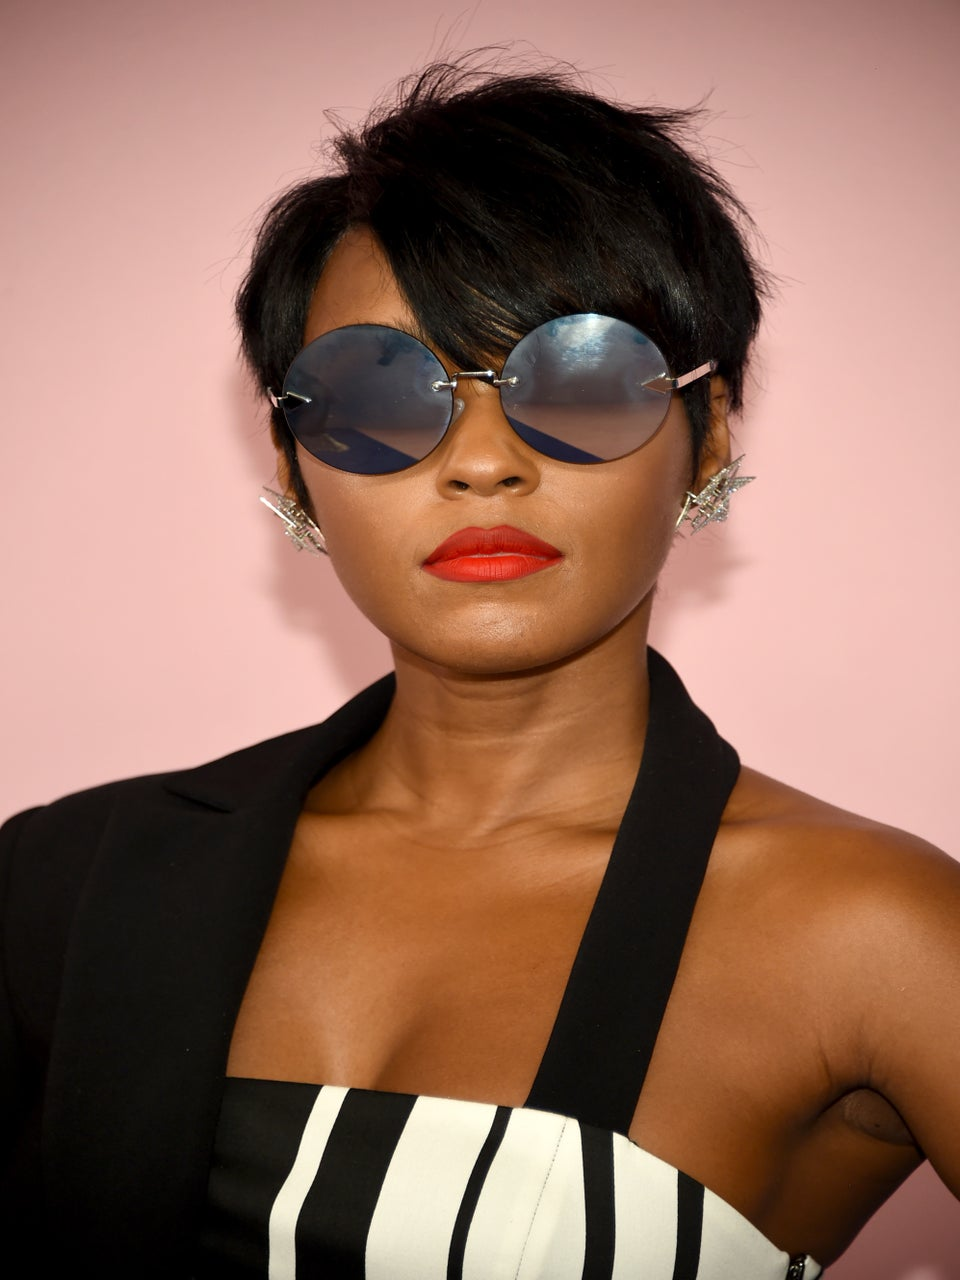 Janelle Monáe: 'There Is Not A Moment Or A Day That Goes By That I Don't Miss Prince'